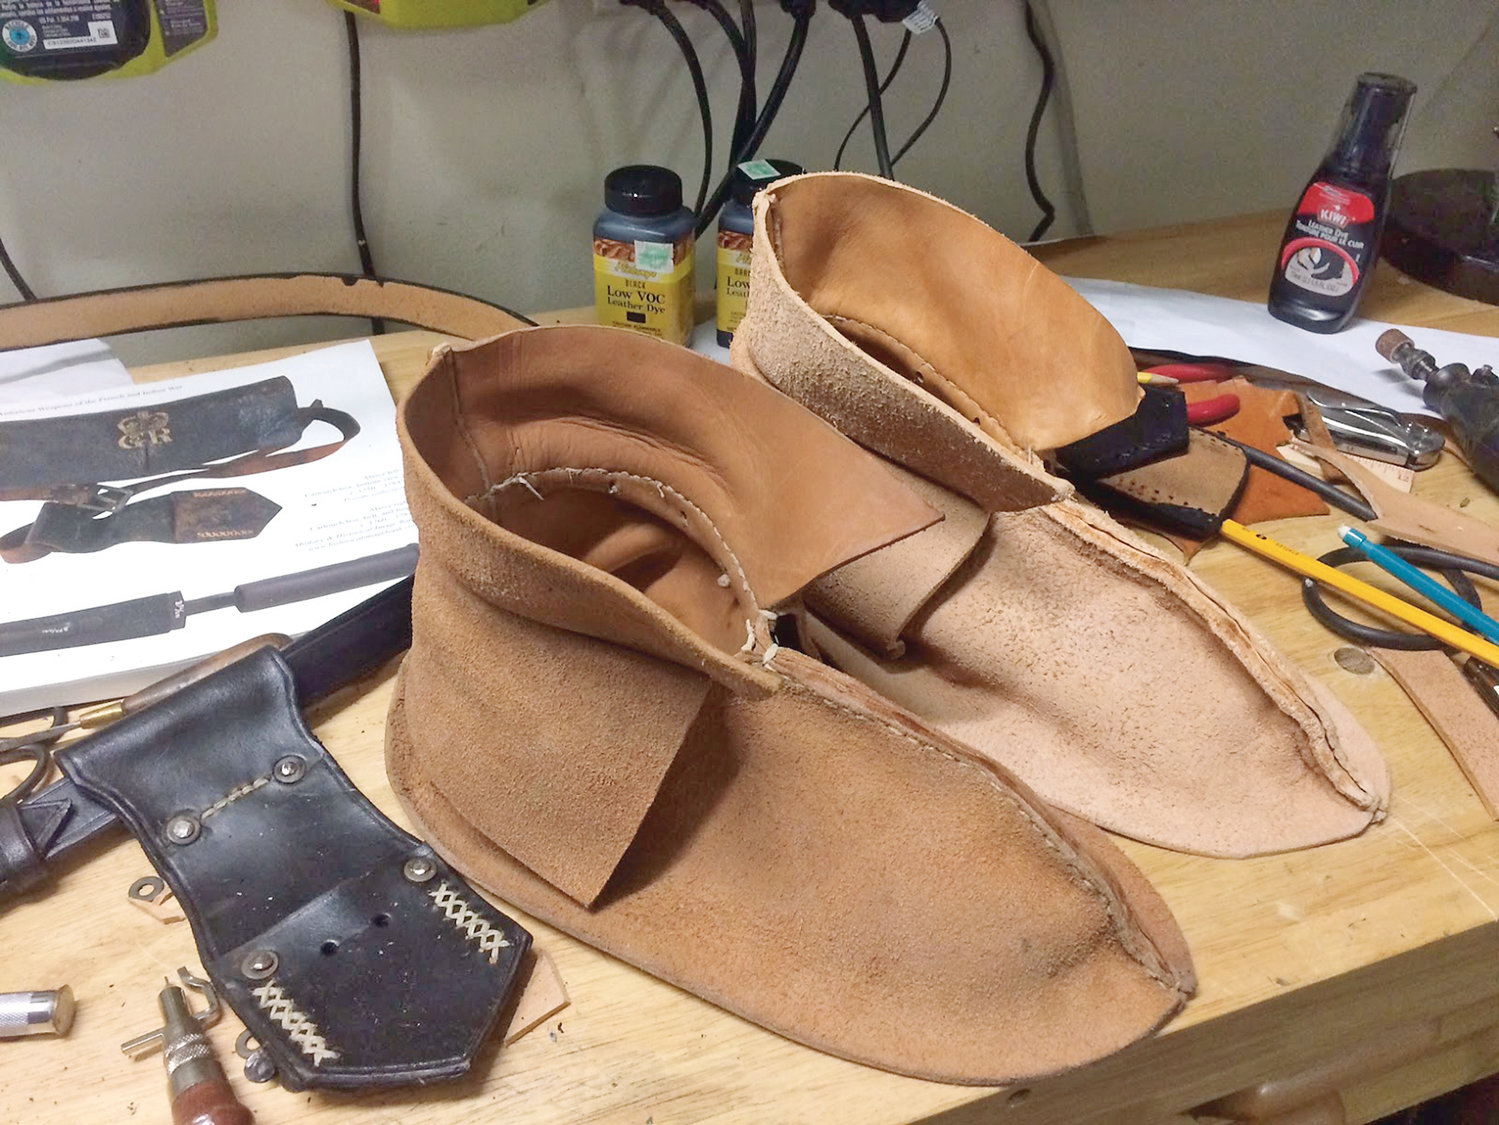 LEARN HOW TO CRAFT your own moccasins and hunting/bullet bags from leather, from longtime leather artist Dave Adams at the historic Ramsey House. The class, which includes materials and detailed instructions, is only $20.